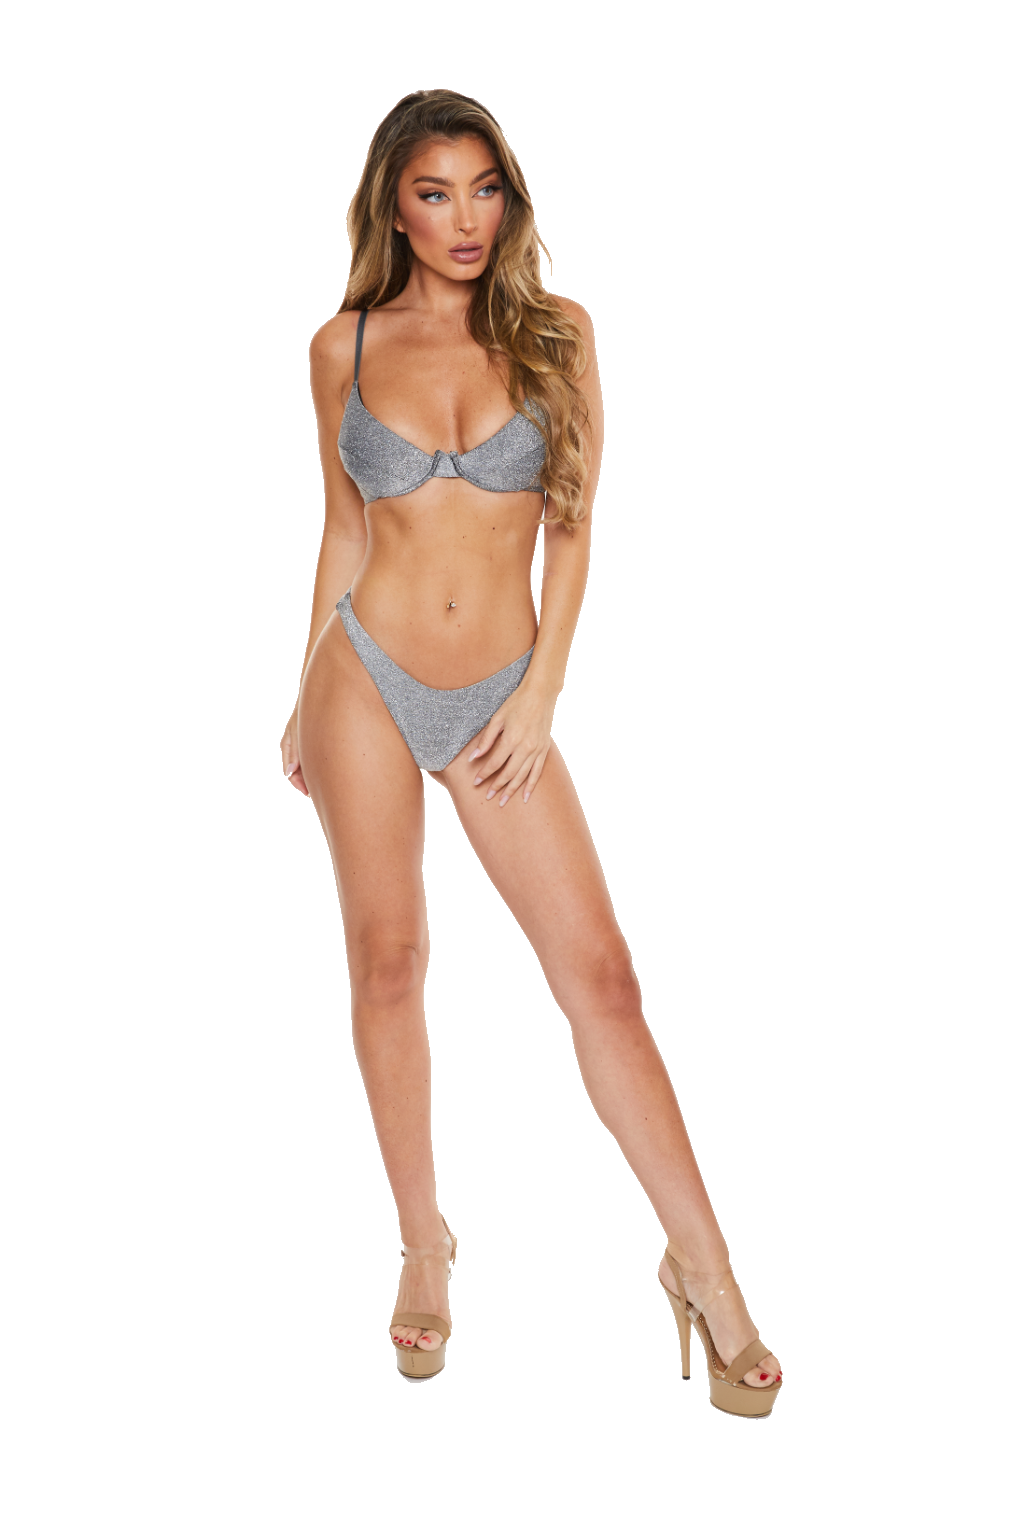 DAZZLE FOR DAYZ - SILVER SPARKLE BIKINI BOTTOMS - www.prettyboutique.com